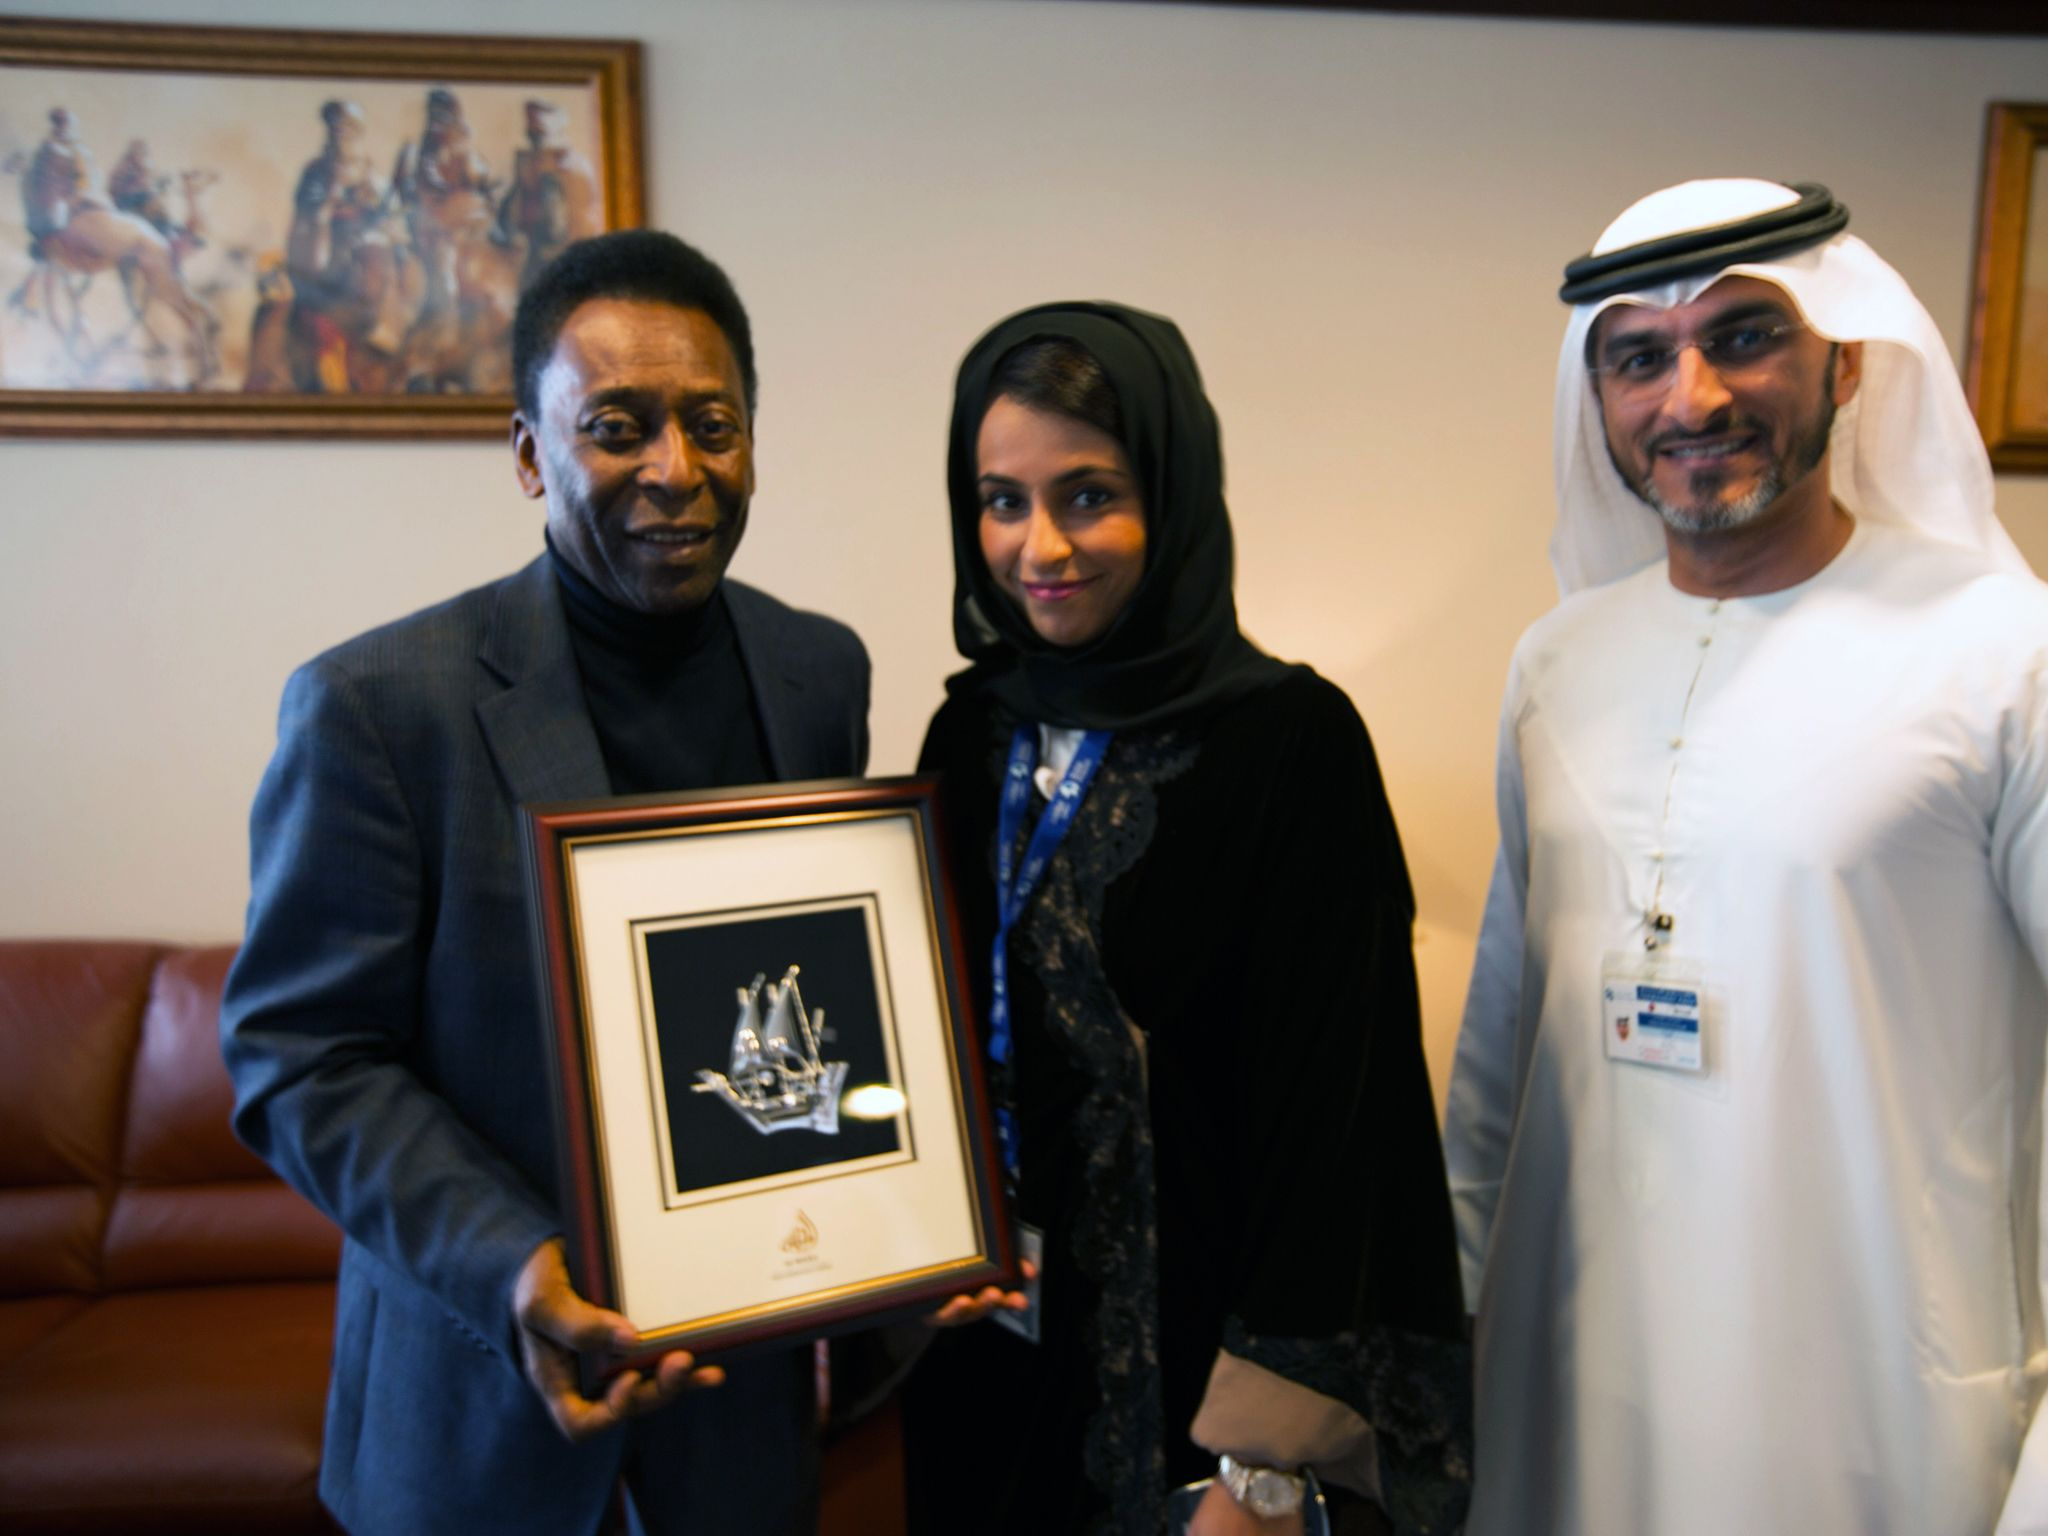 Dubai Airport, UAE: Pele poses for photos with Najla Al Midfa and Rabee Al Awadi. This image is f... [Photo of the day - دسامبر 2014]